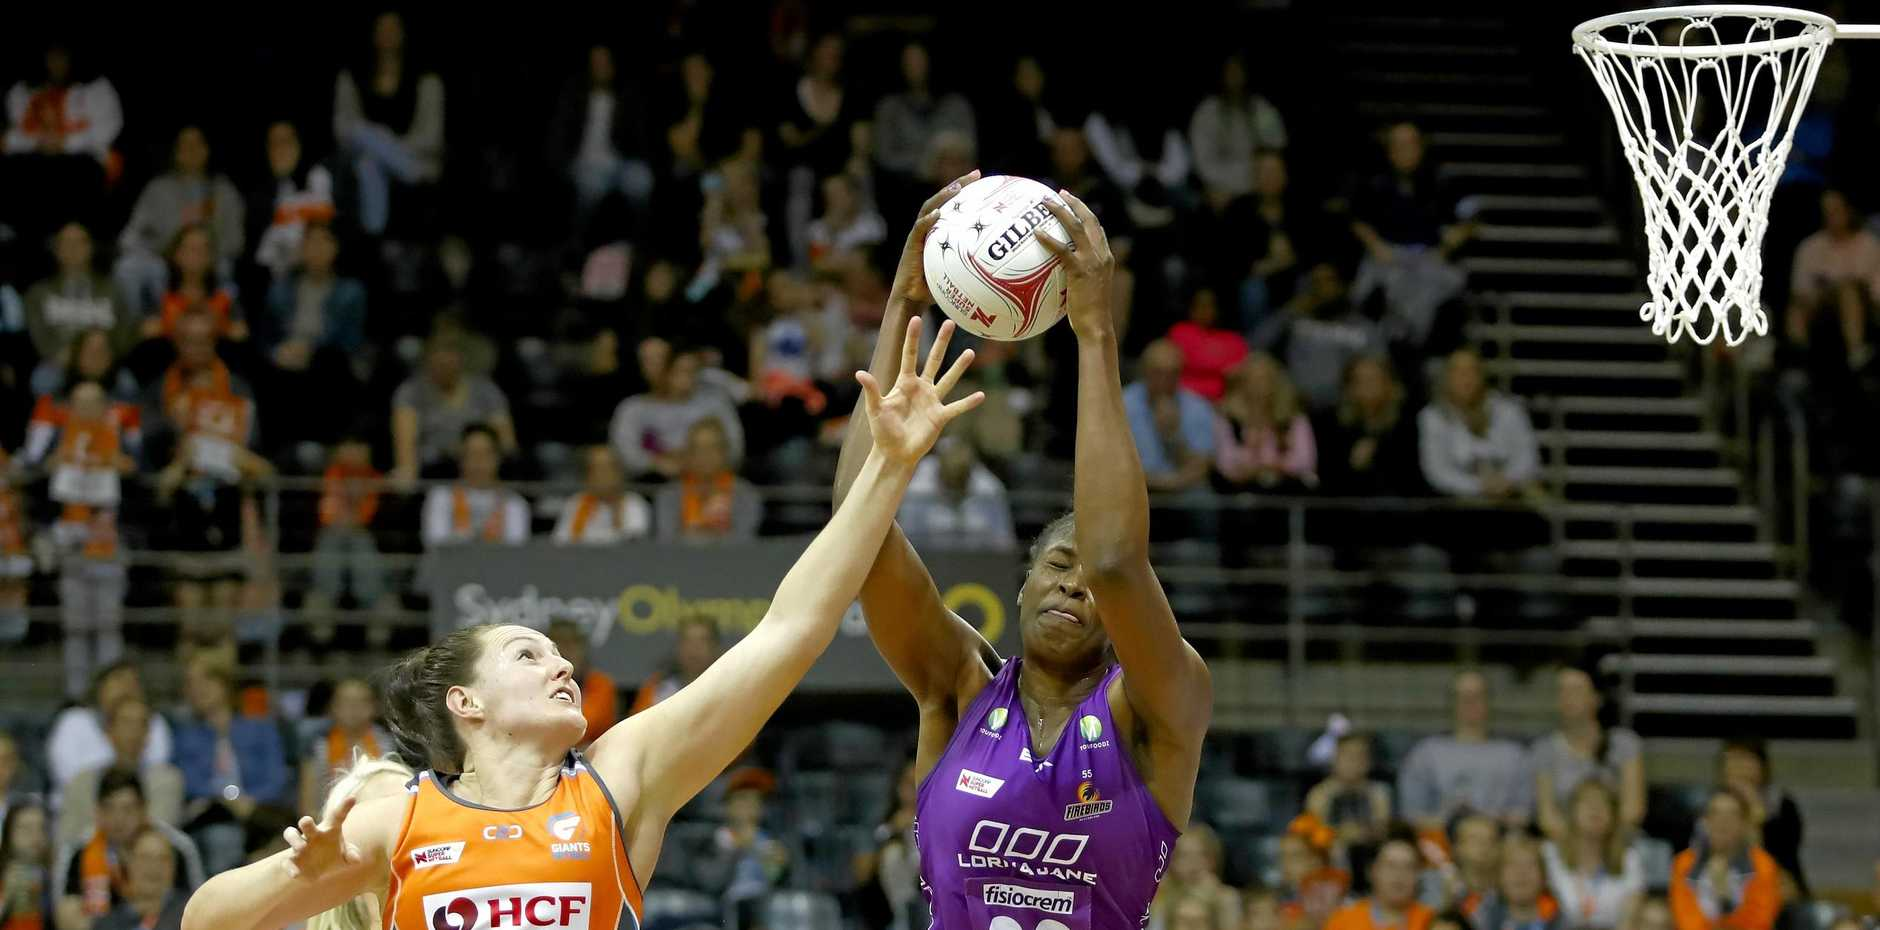 Romelda Aiken of the Firebirds gets possession despite the efforts of the Giants' Samantha Poolman in their Super Netball match on Saturday.